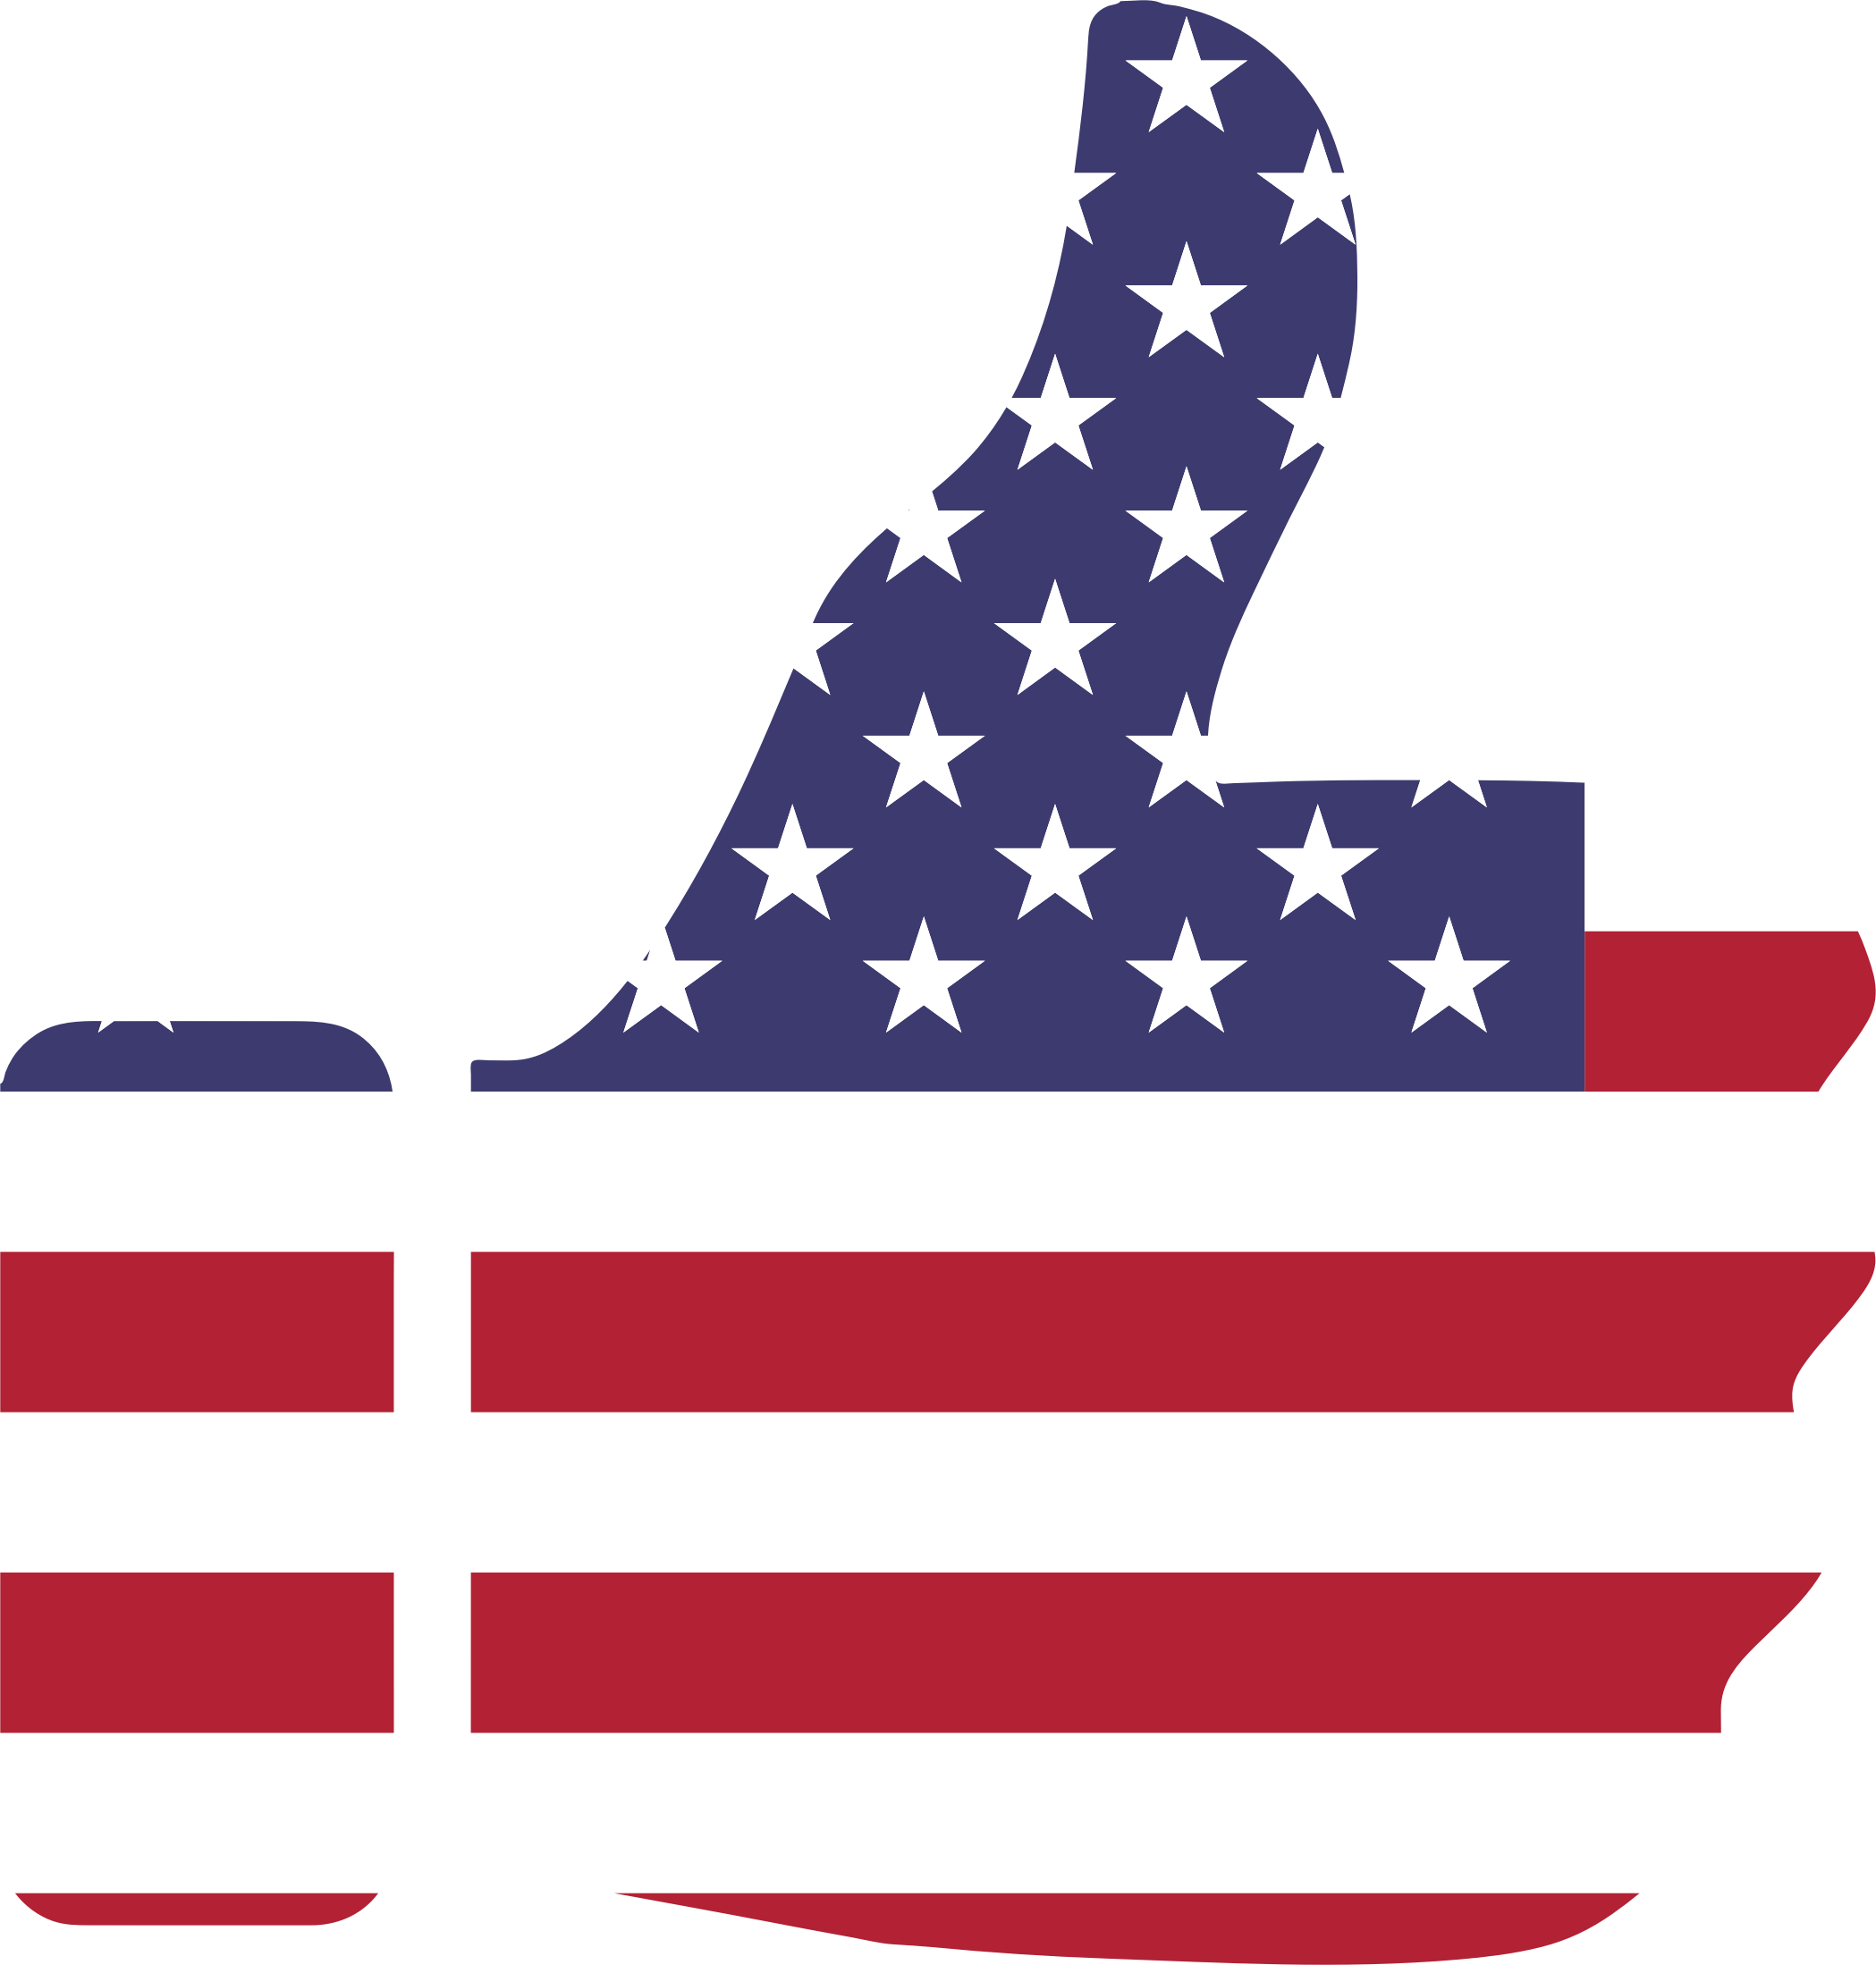 American flag star clipart png free library Clipart - Thumbs Up American Flag png free library